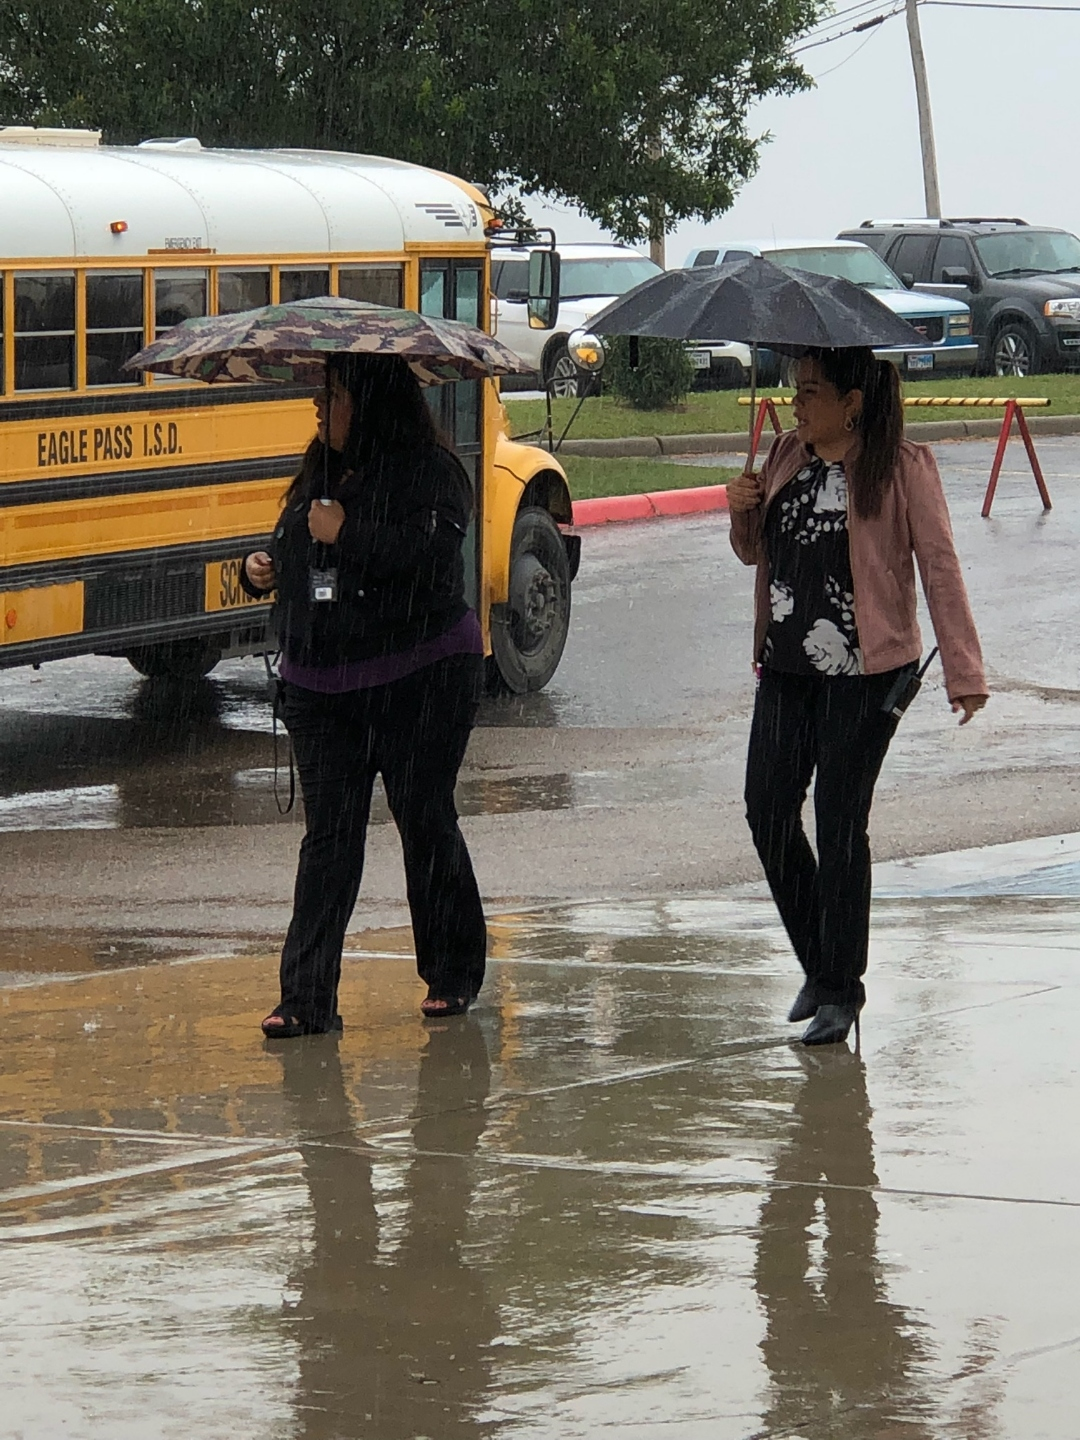 Eagle Pass Isd Ivision Roadrunner Admin Lends A Helping Hand